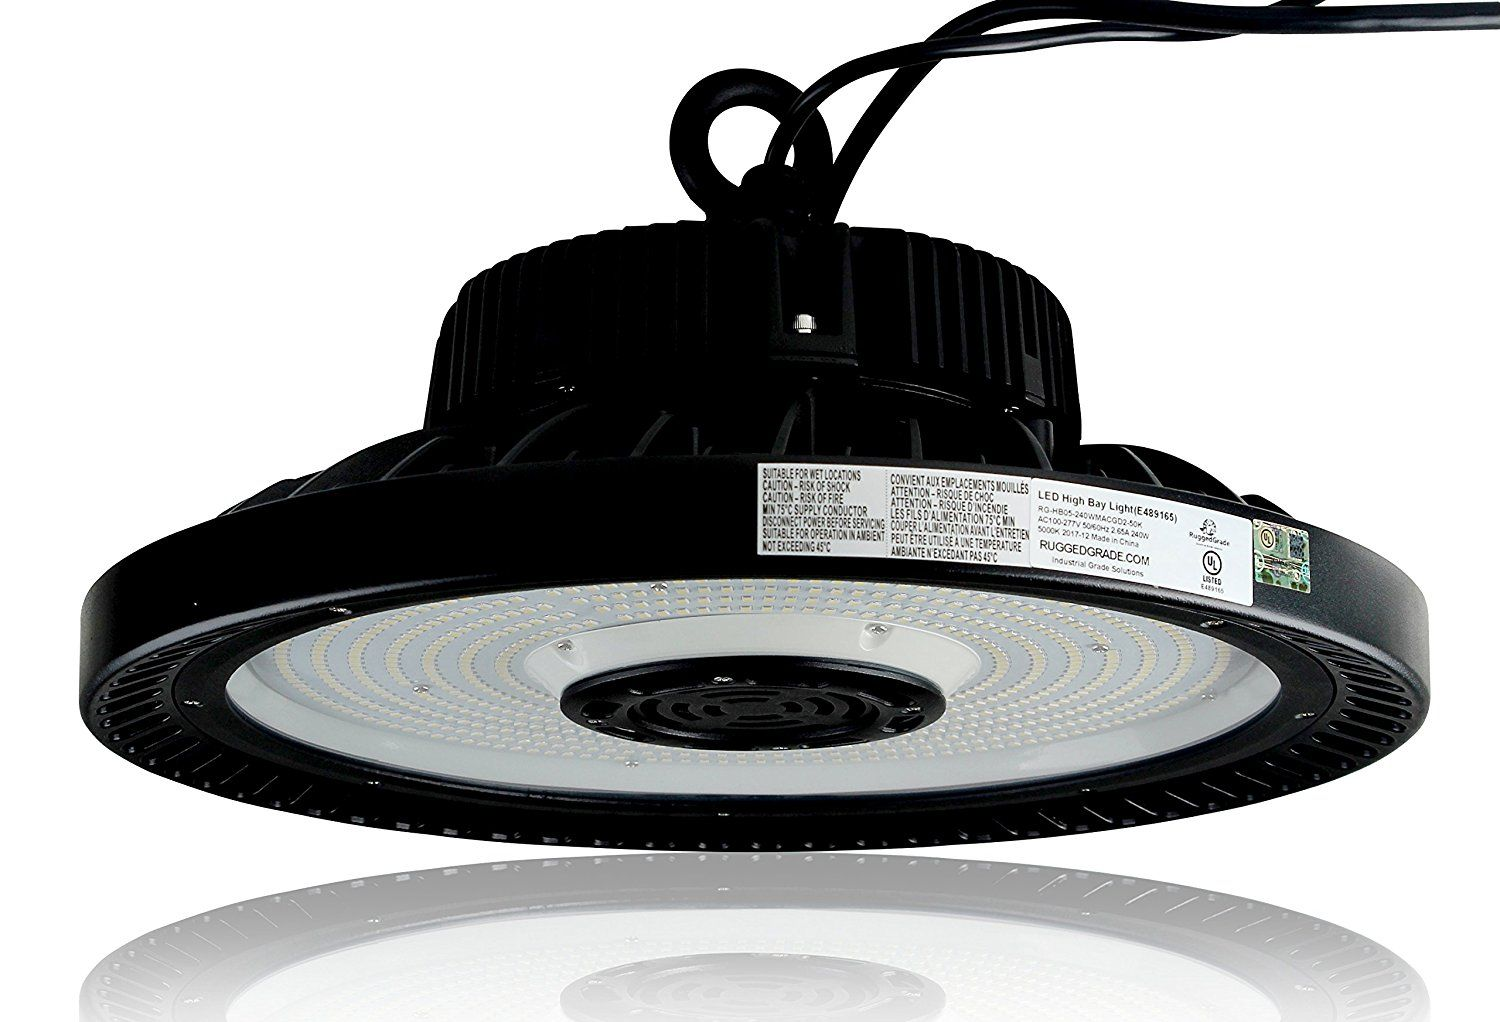 Motion Sensor Flood Light Are You Looking For A Good Quality And Branded Led Canopy Light With Atleast 5years Of Buy Led Lights High Bay Lighting Bay Lights